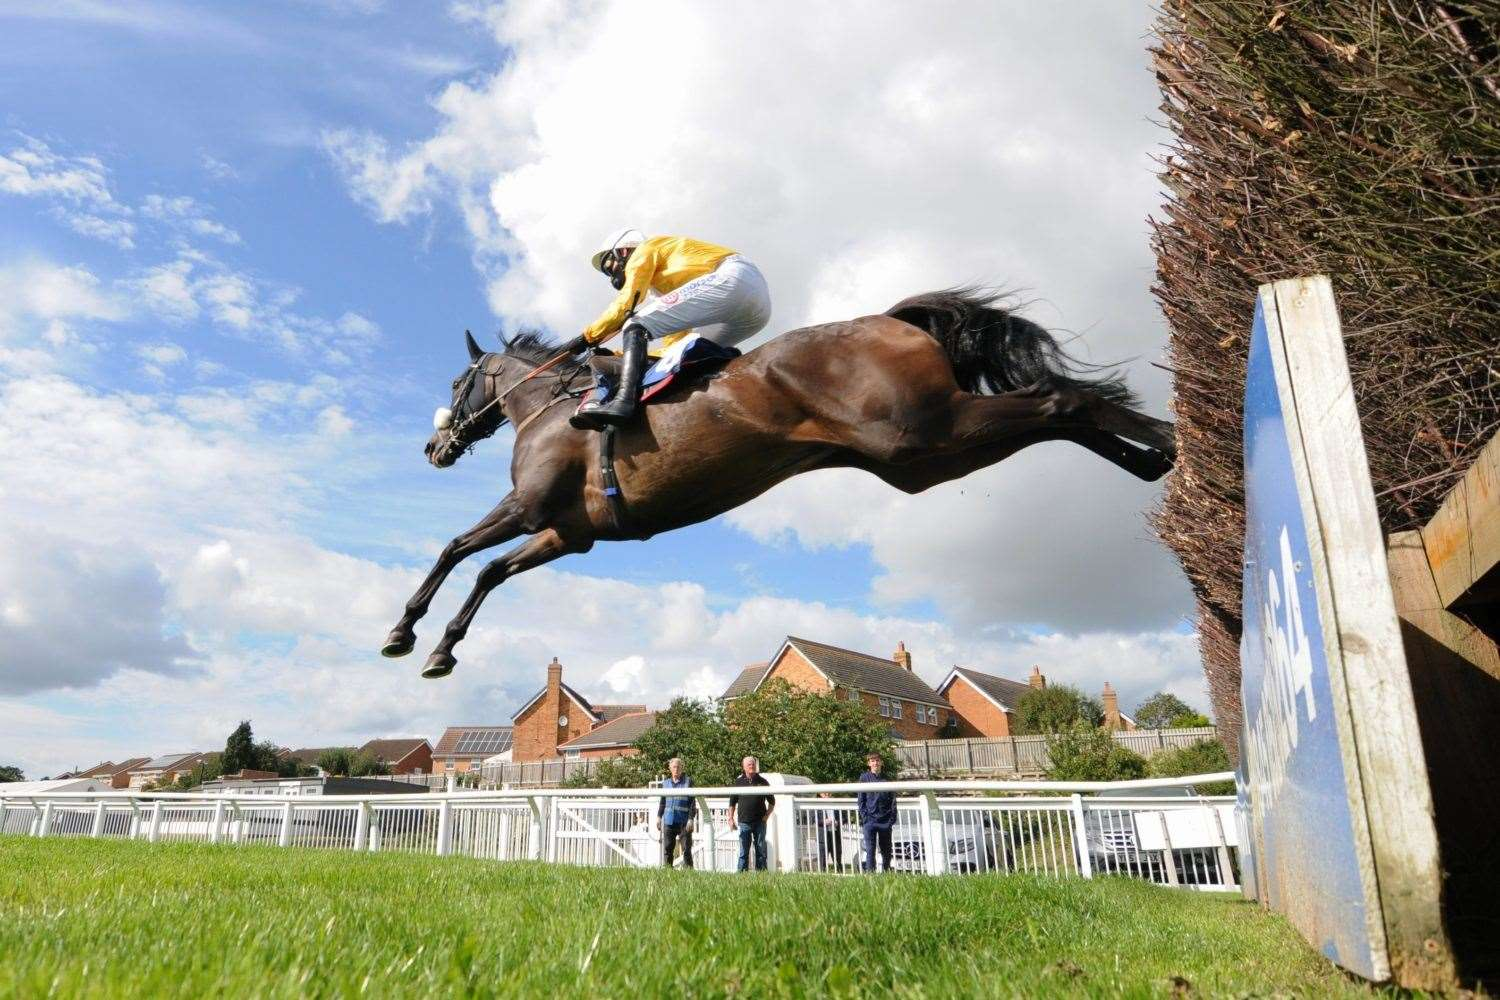 Darling Maltaix flies over a fence on his way to victory. Photo: Steve Davies / www.sdphotos.co.uk